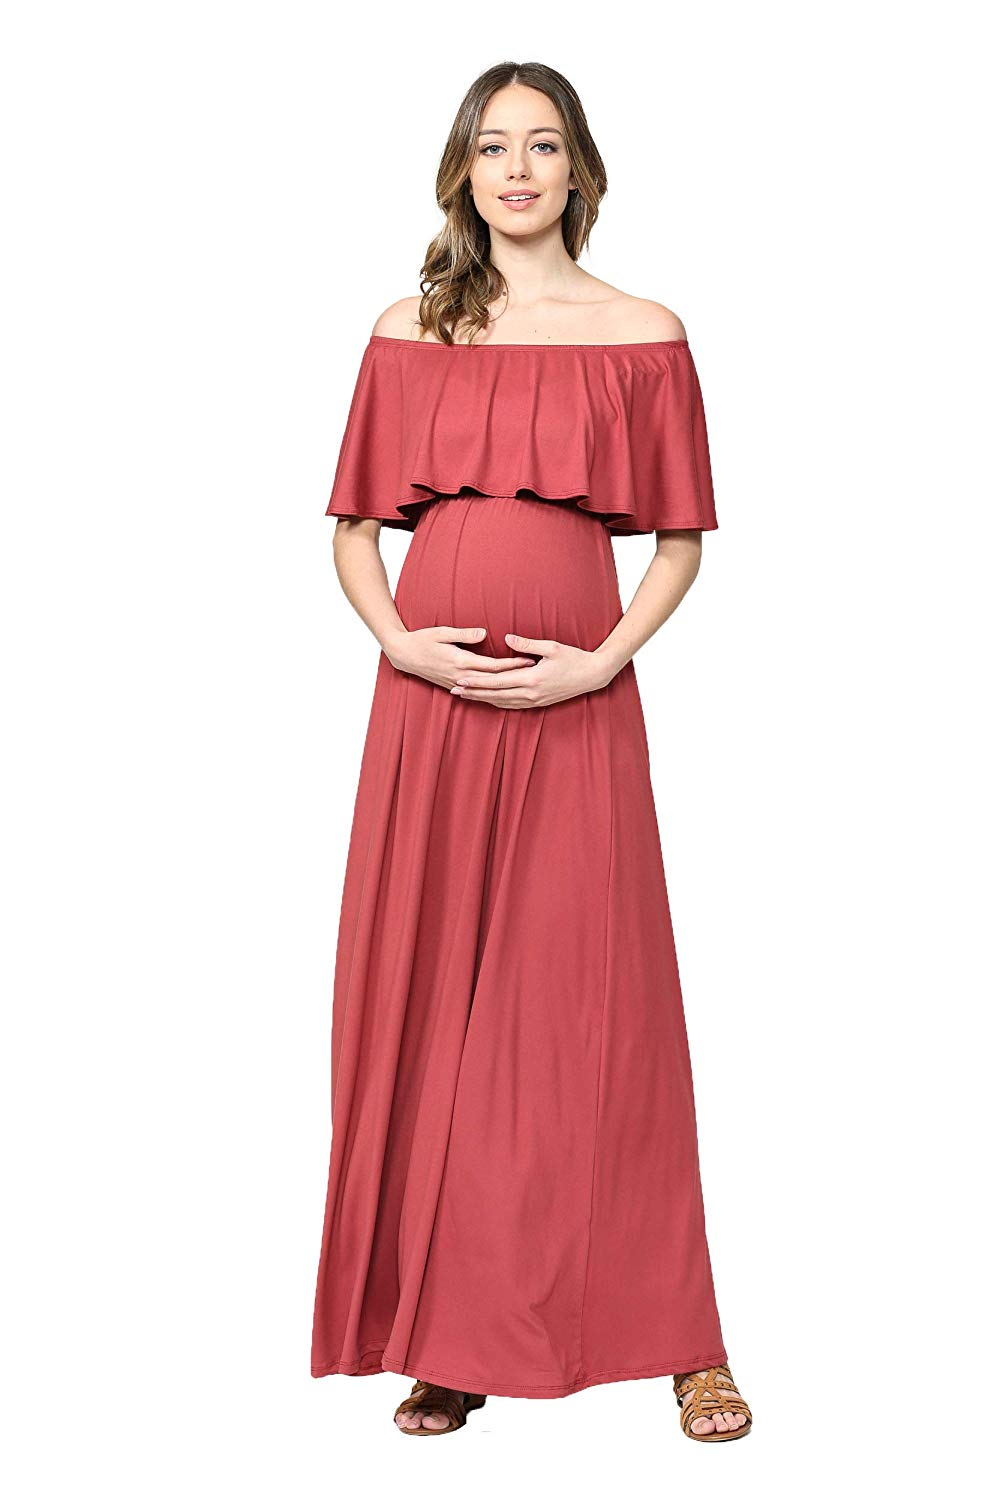 Rust Maternity Maxi Dress - Mommylicious